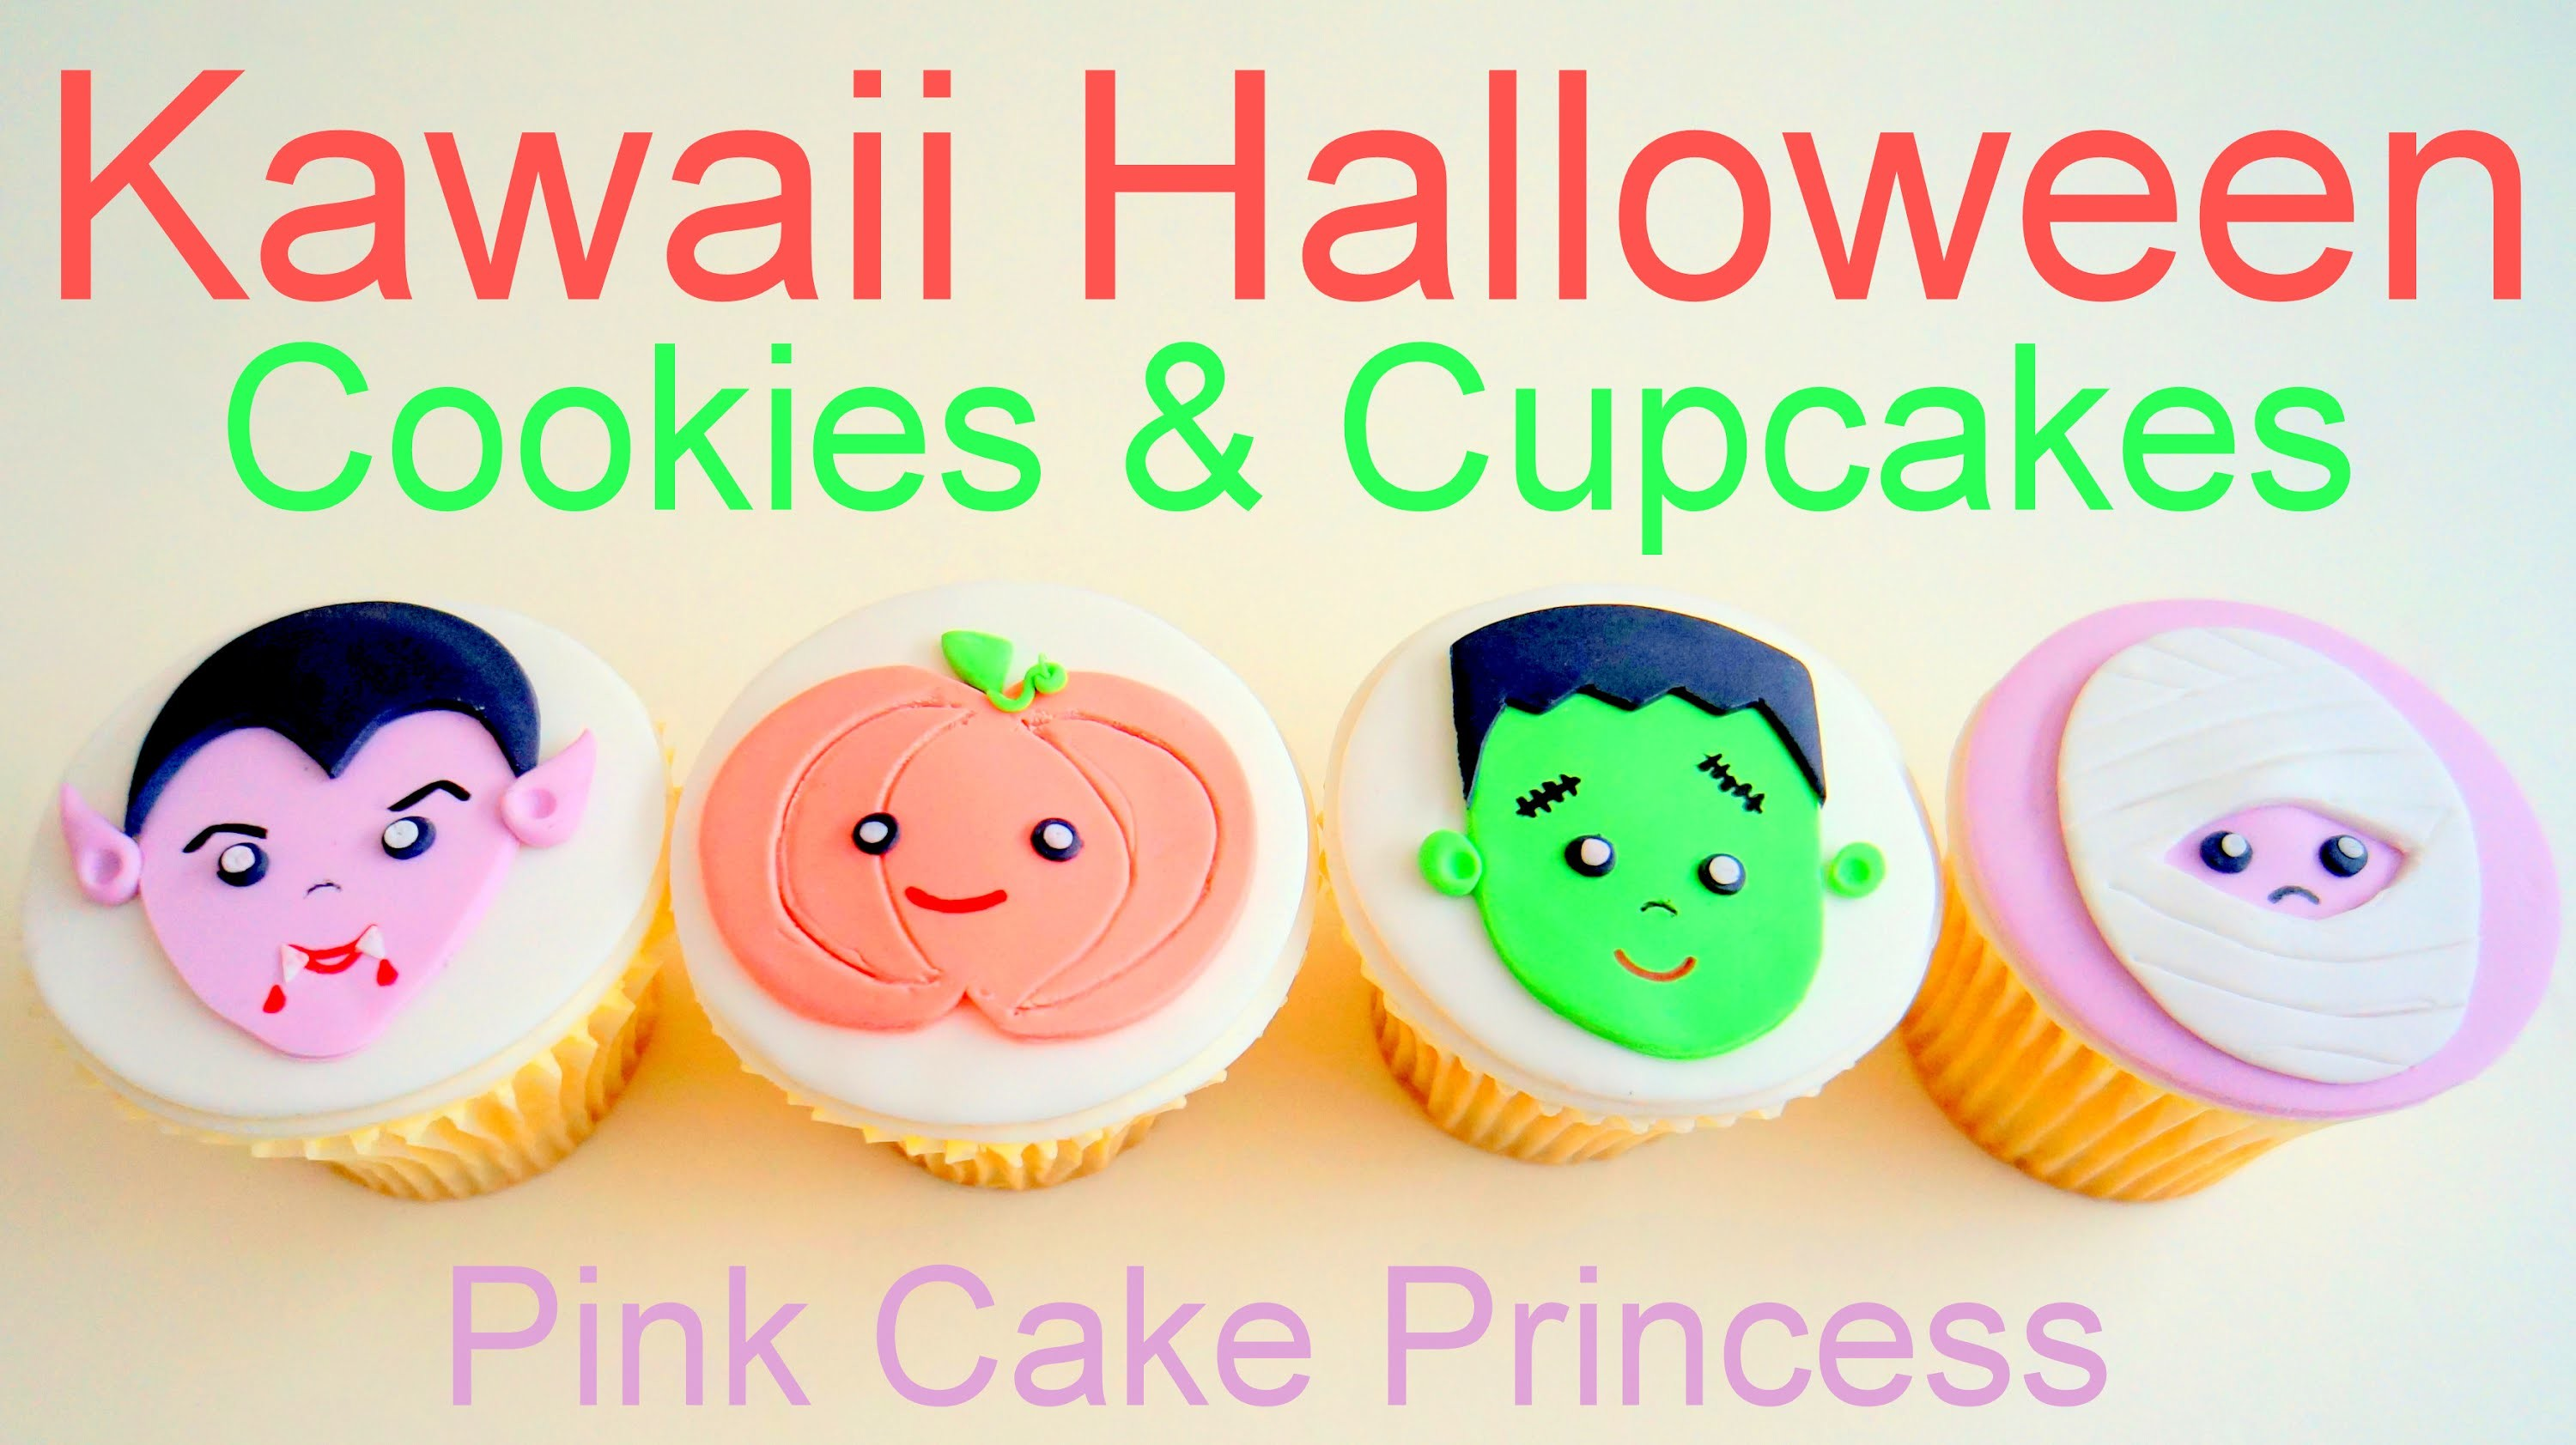 Kawaii Halloween Cupcakes & Cookie Pops How to by Pink Cake Princess